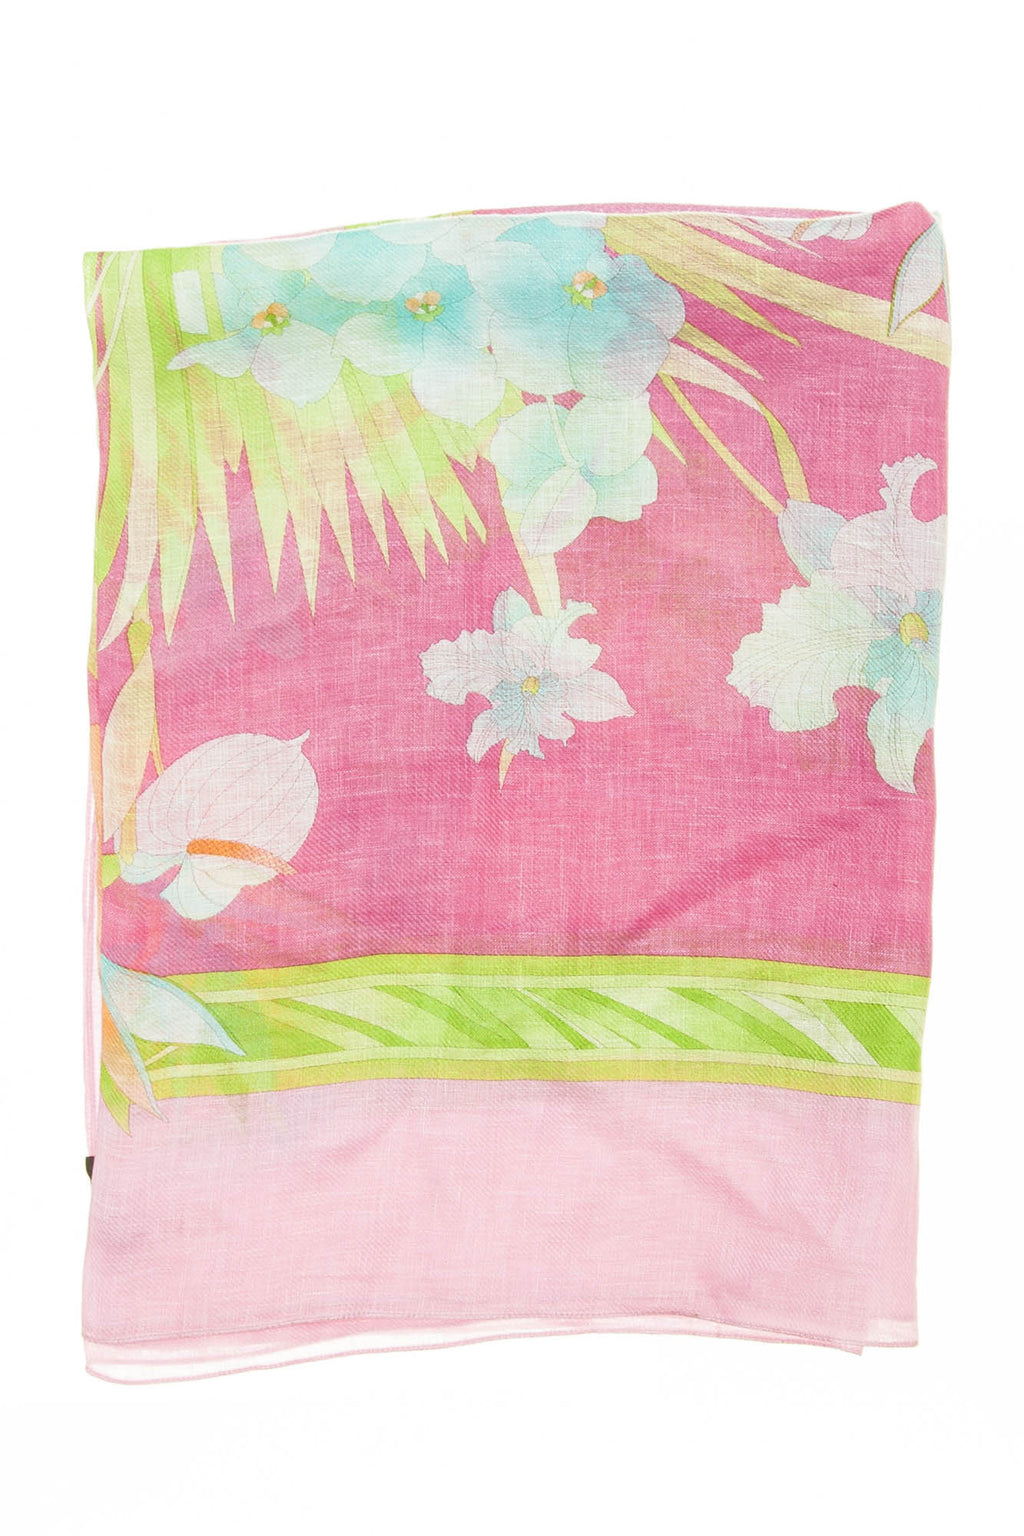 Leonard - Pink Scarf With Blue Flowers - One Size